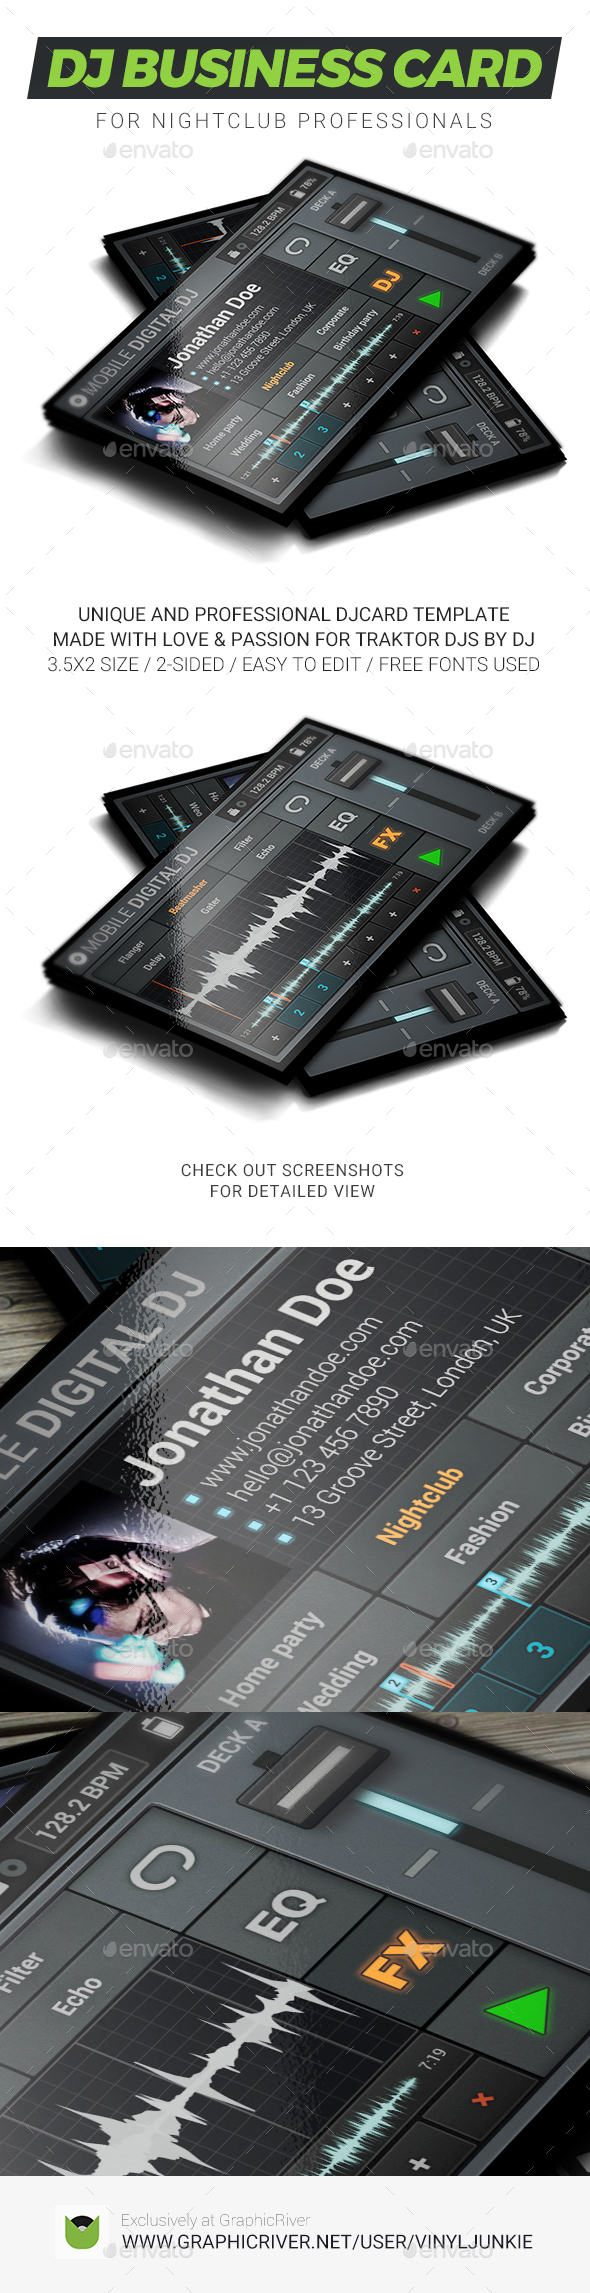 Mobile Digital DJ Business Card - Industry Specific Business Cards